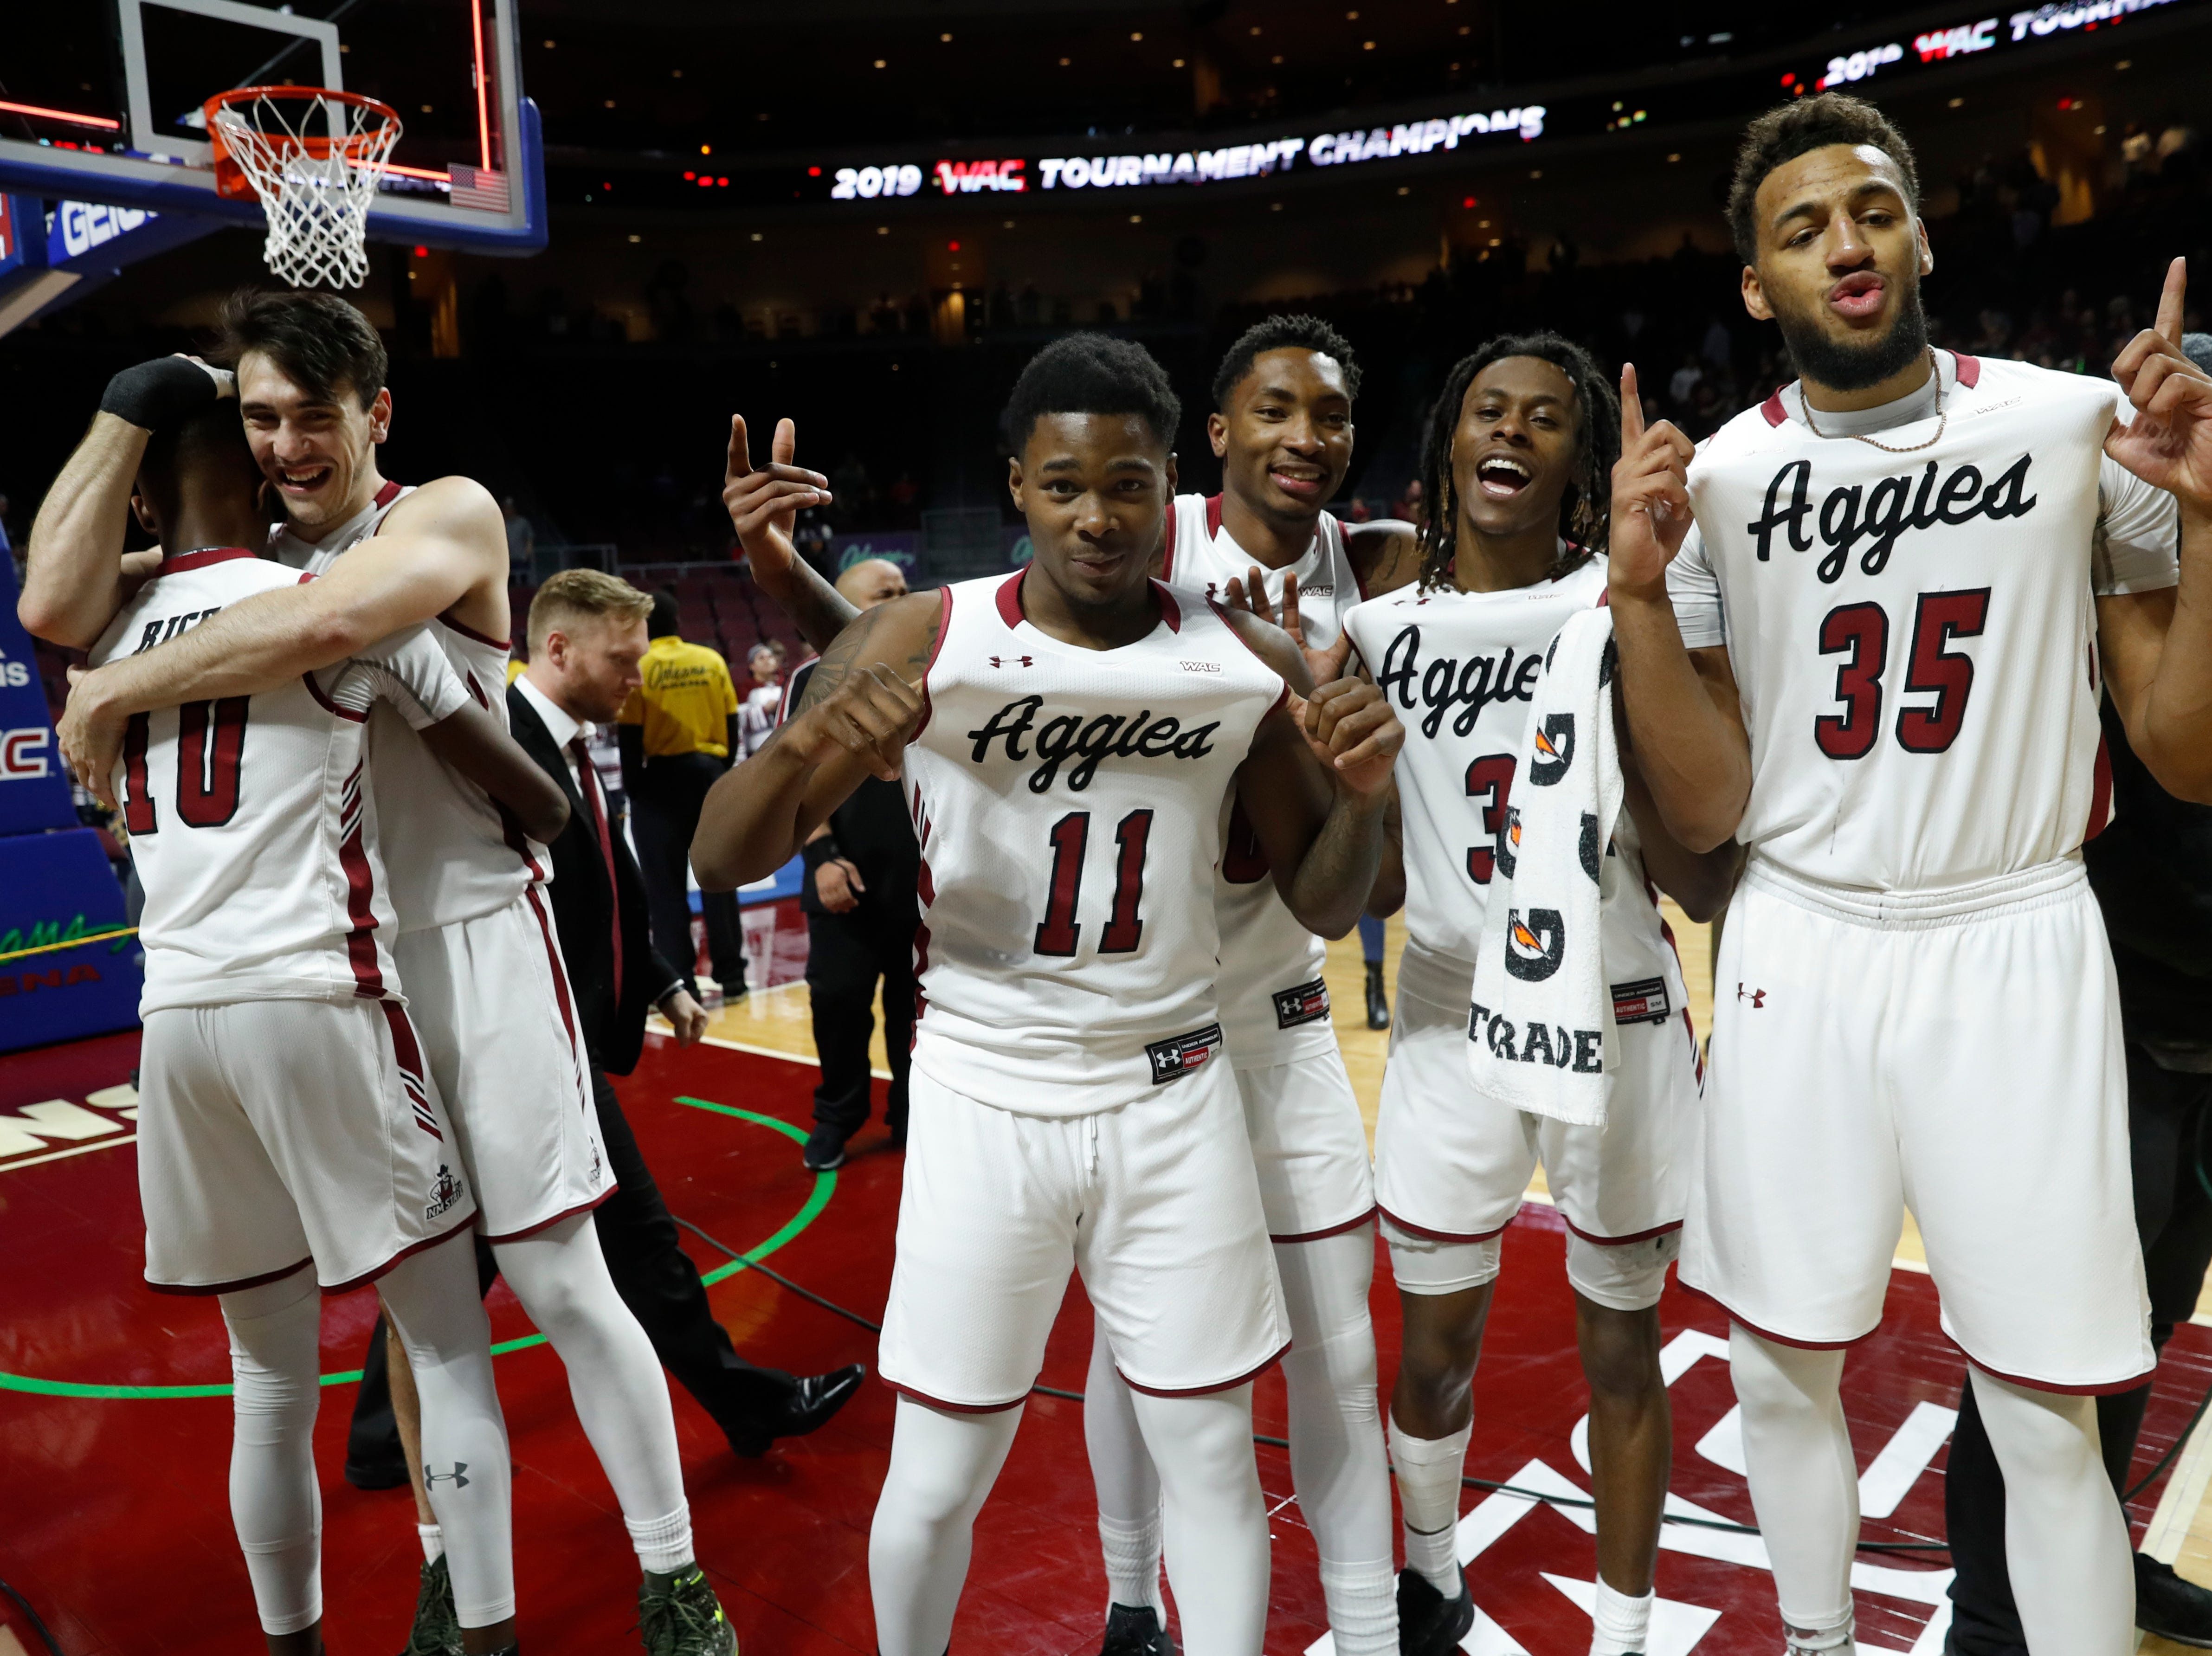 New Mexico State (30-4), No. 12 seed in Midwest, Western Athletic Conference champion